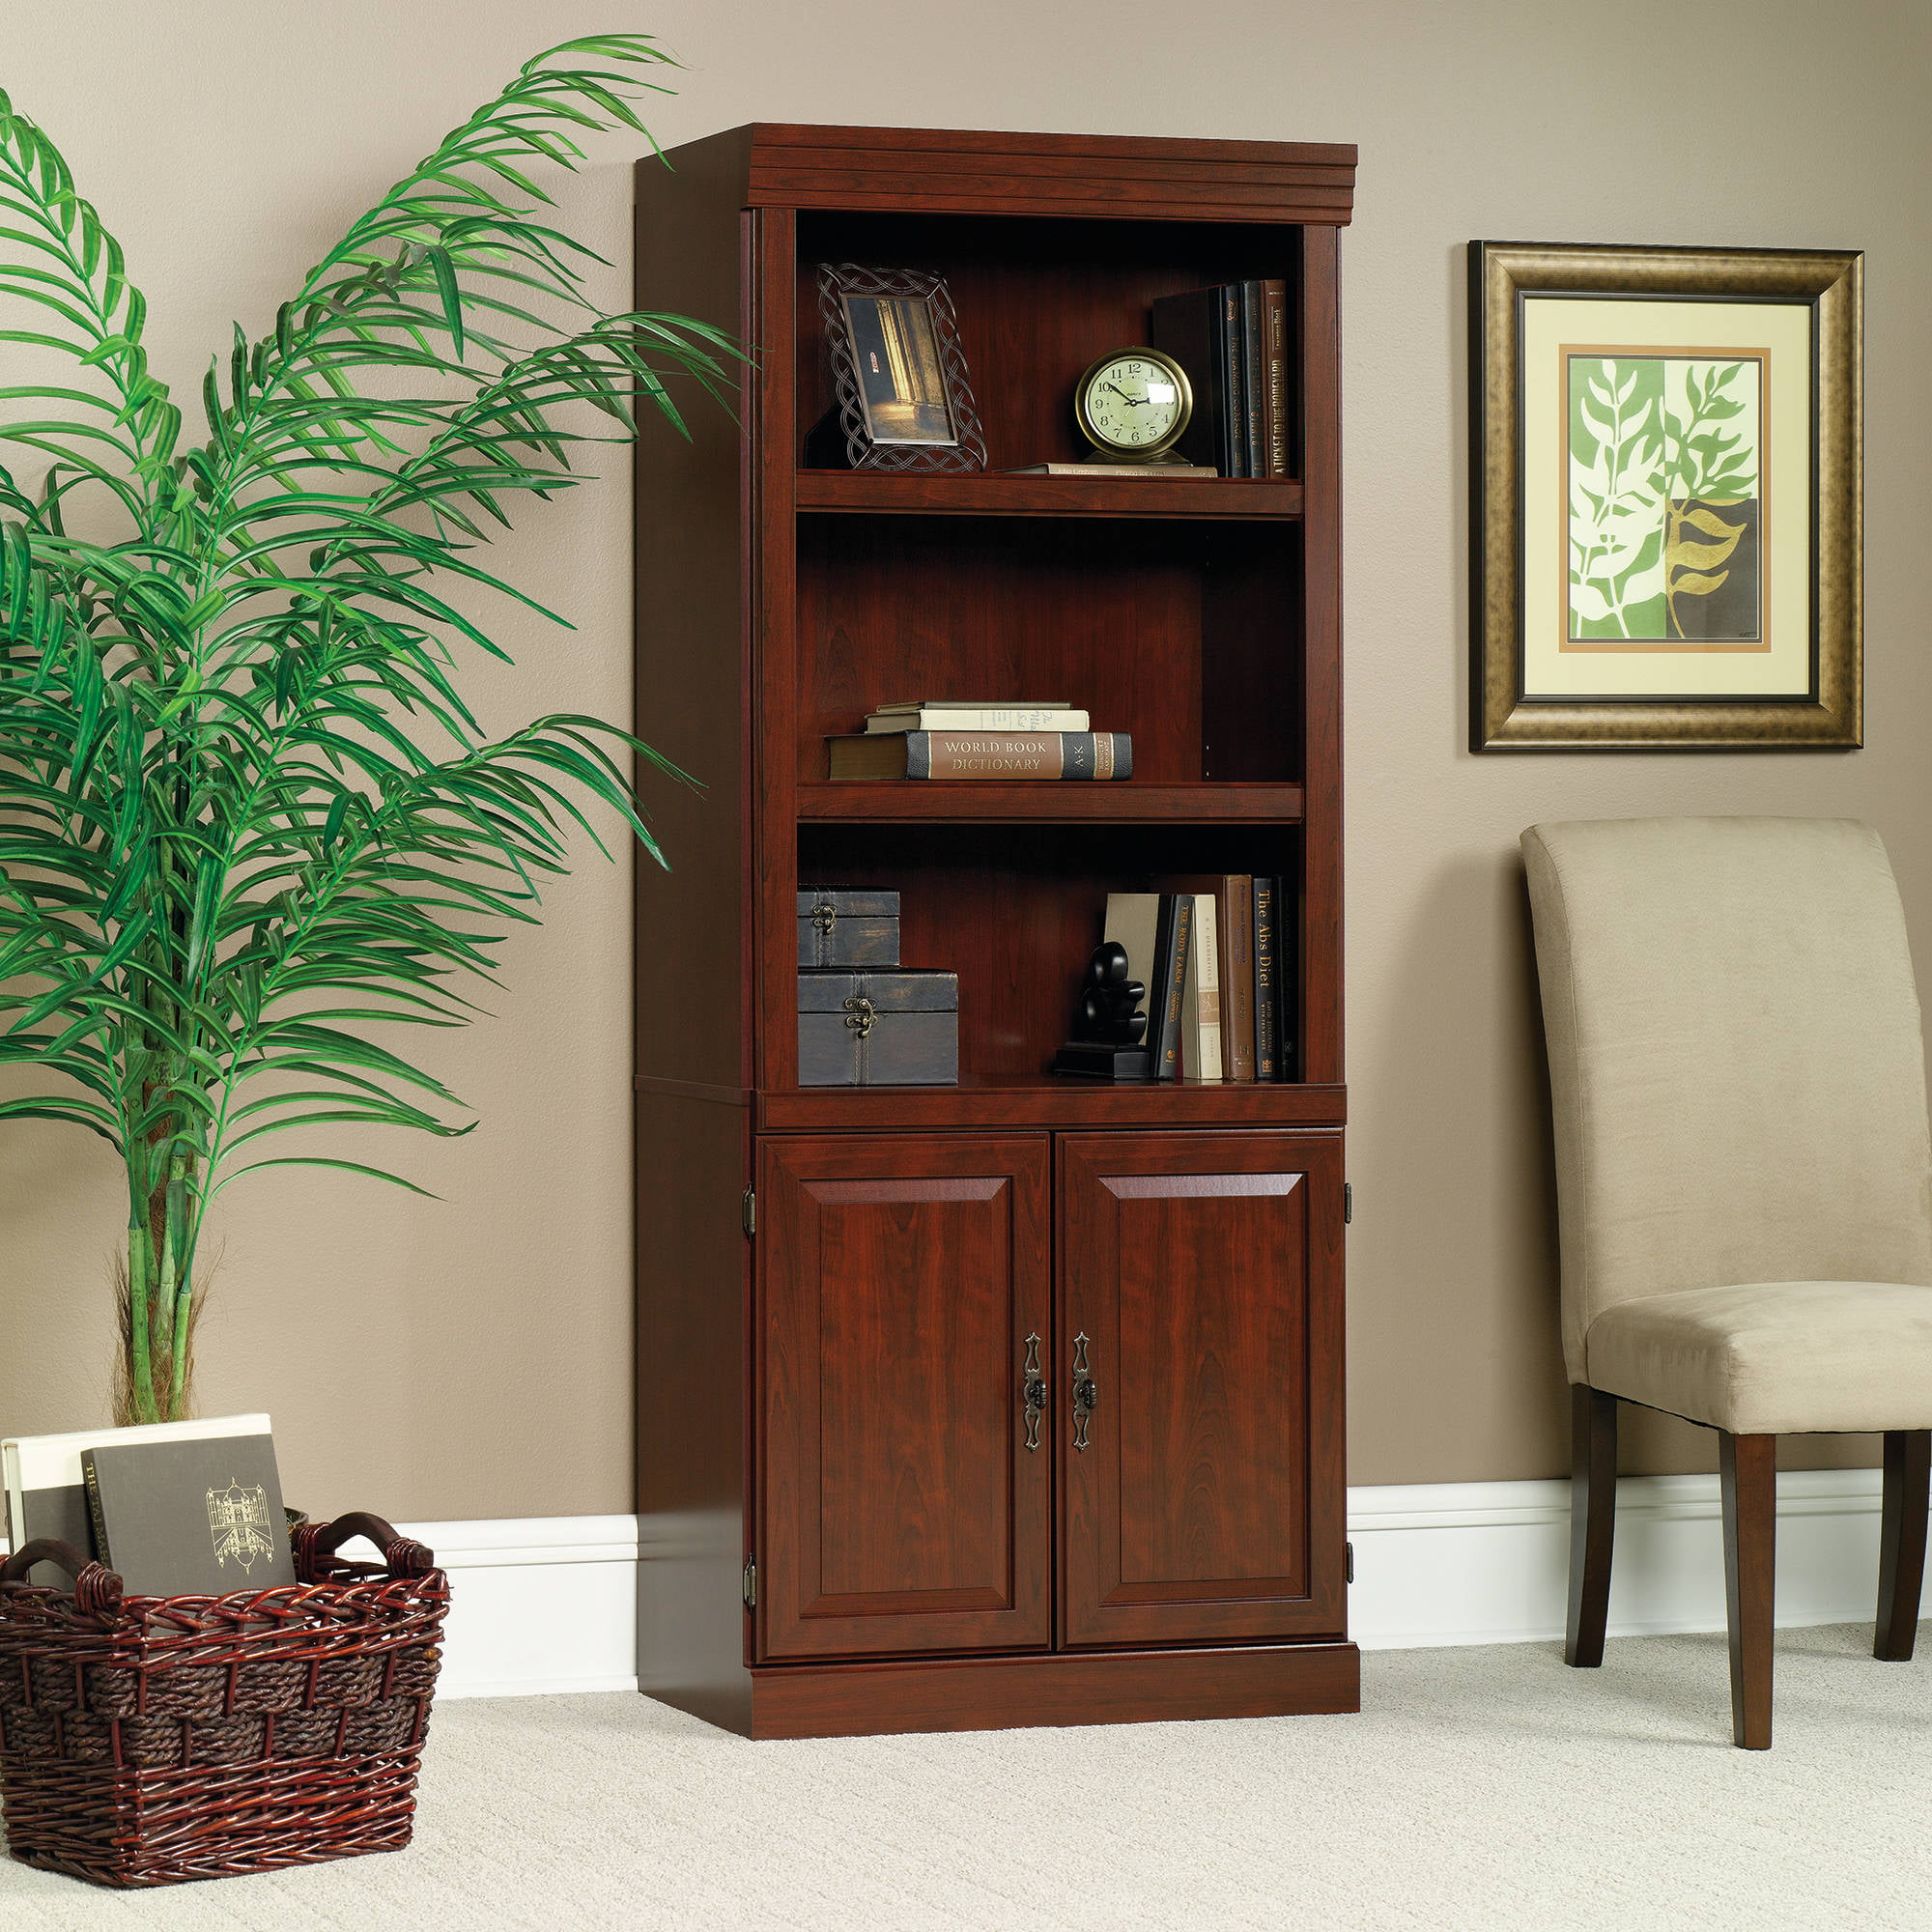 Home office furniture cherry Cherry Wood Sauder 71 Value City Furniture Sauder 71